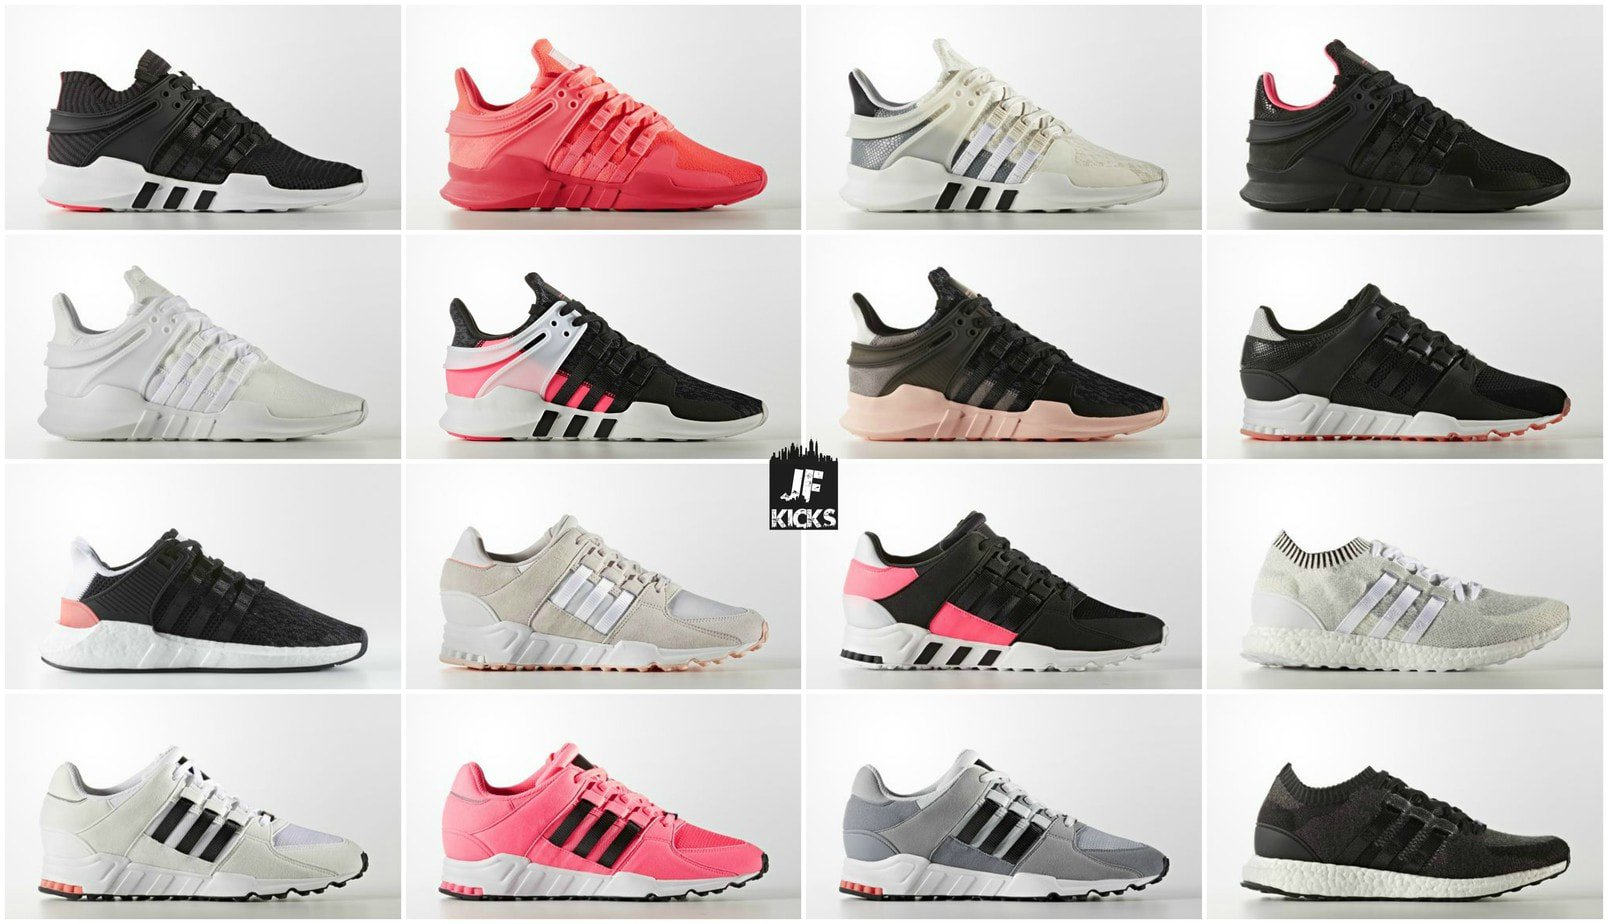 2cd202160eb4 ... cheap adidas eqt ss17 collection online links 48221 50378